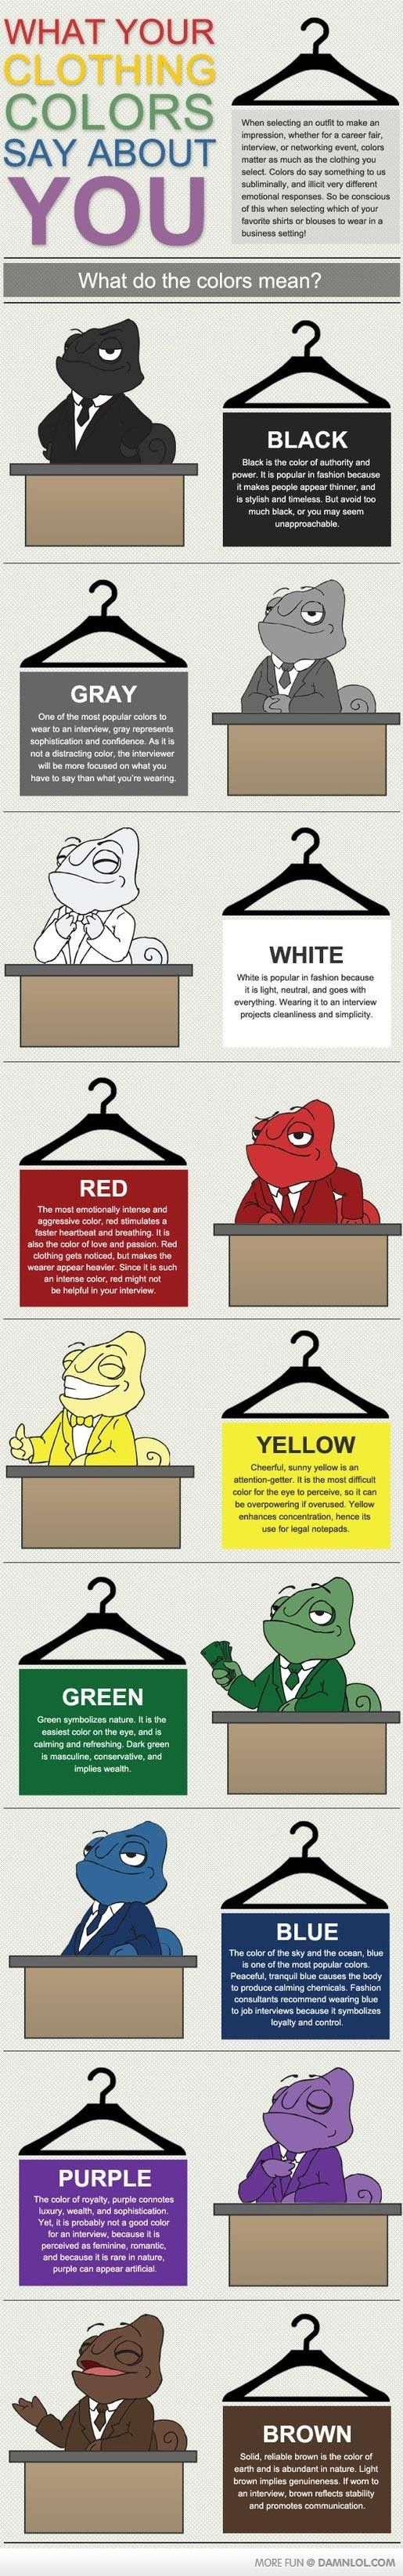 What Your Clothing Colours Say About You.  | #infographics repinned by @Piktochart